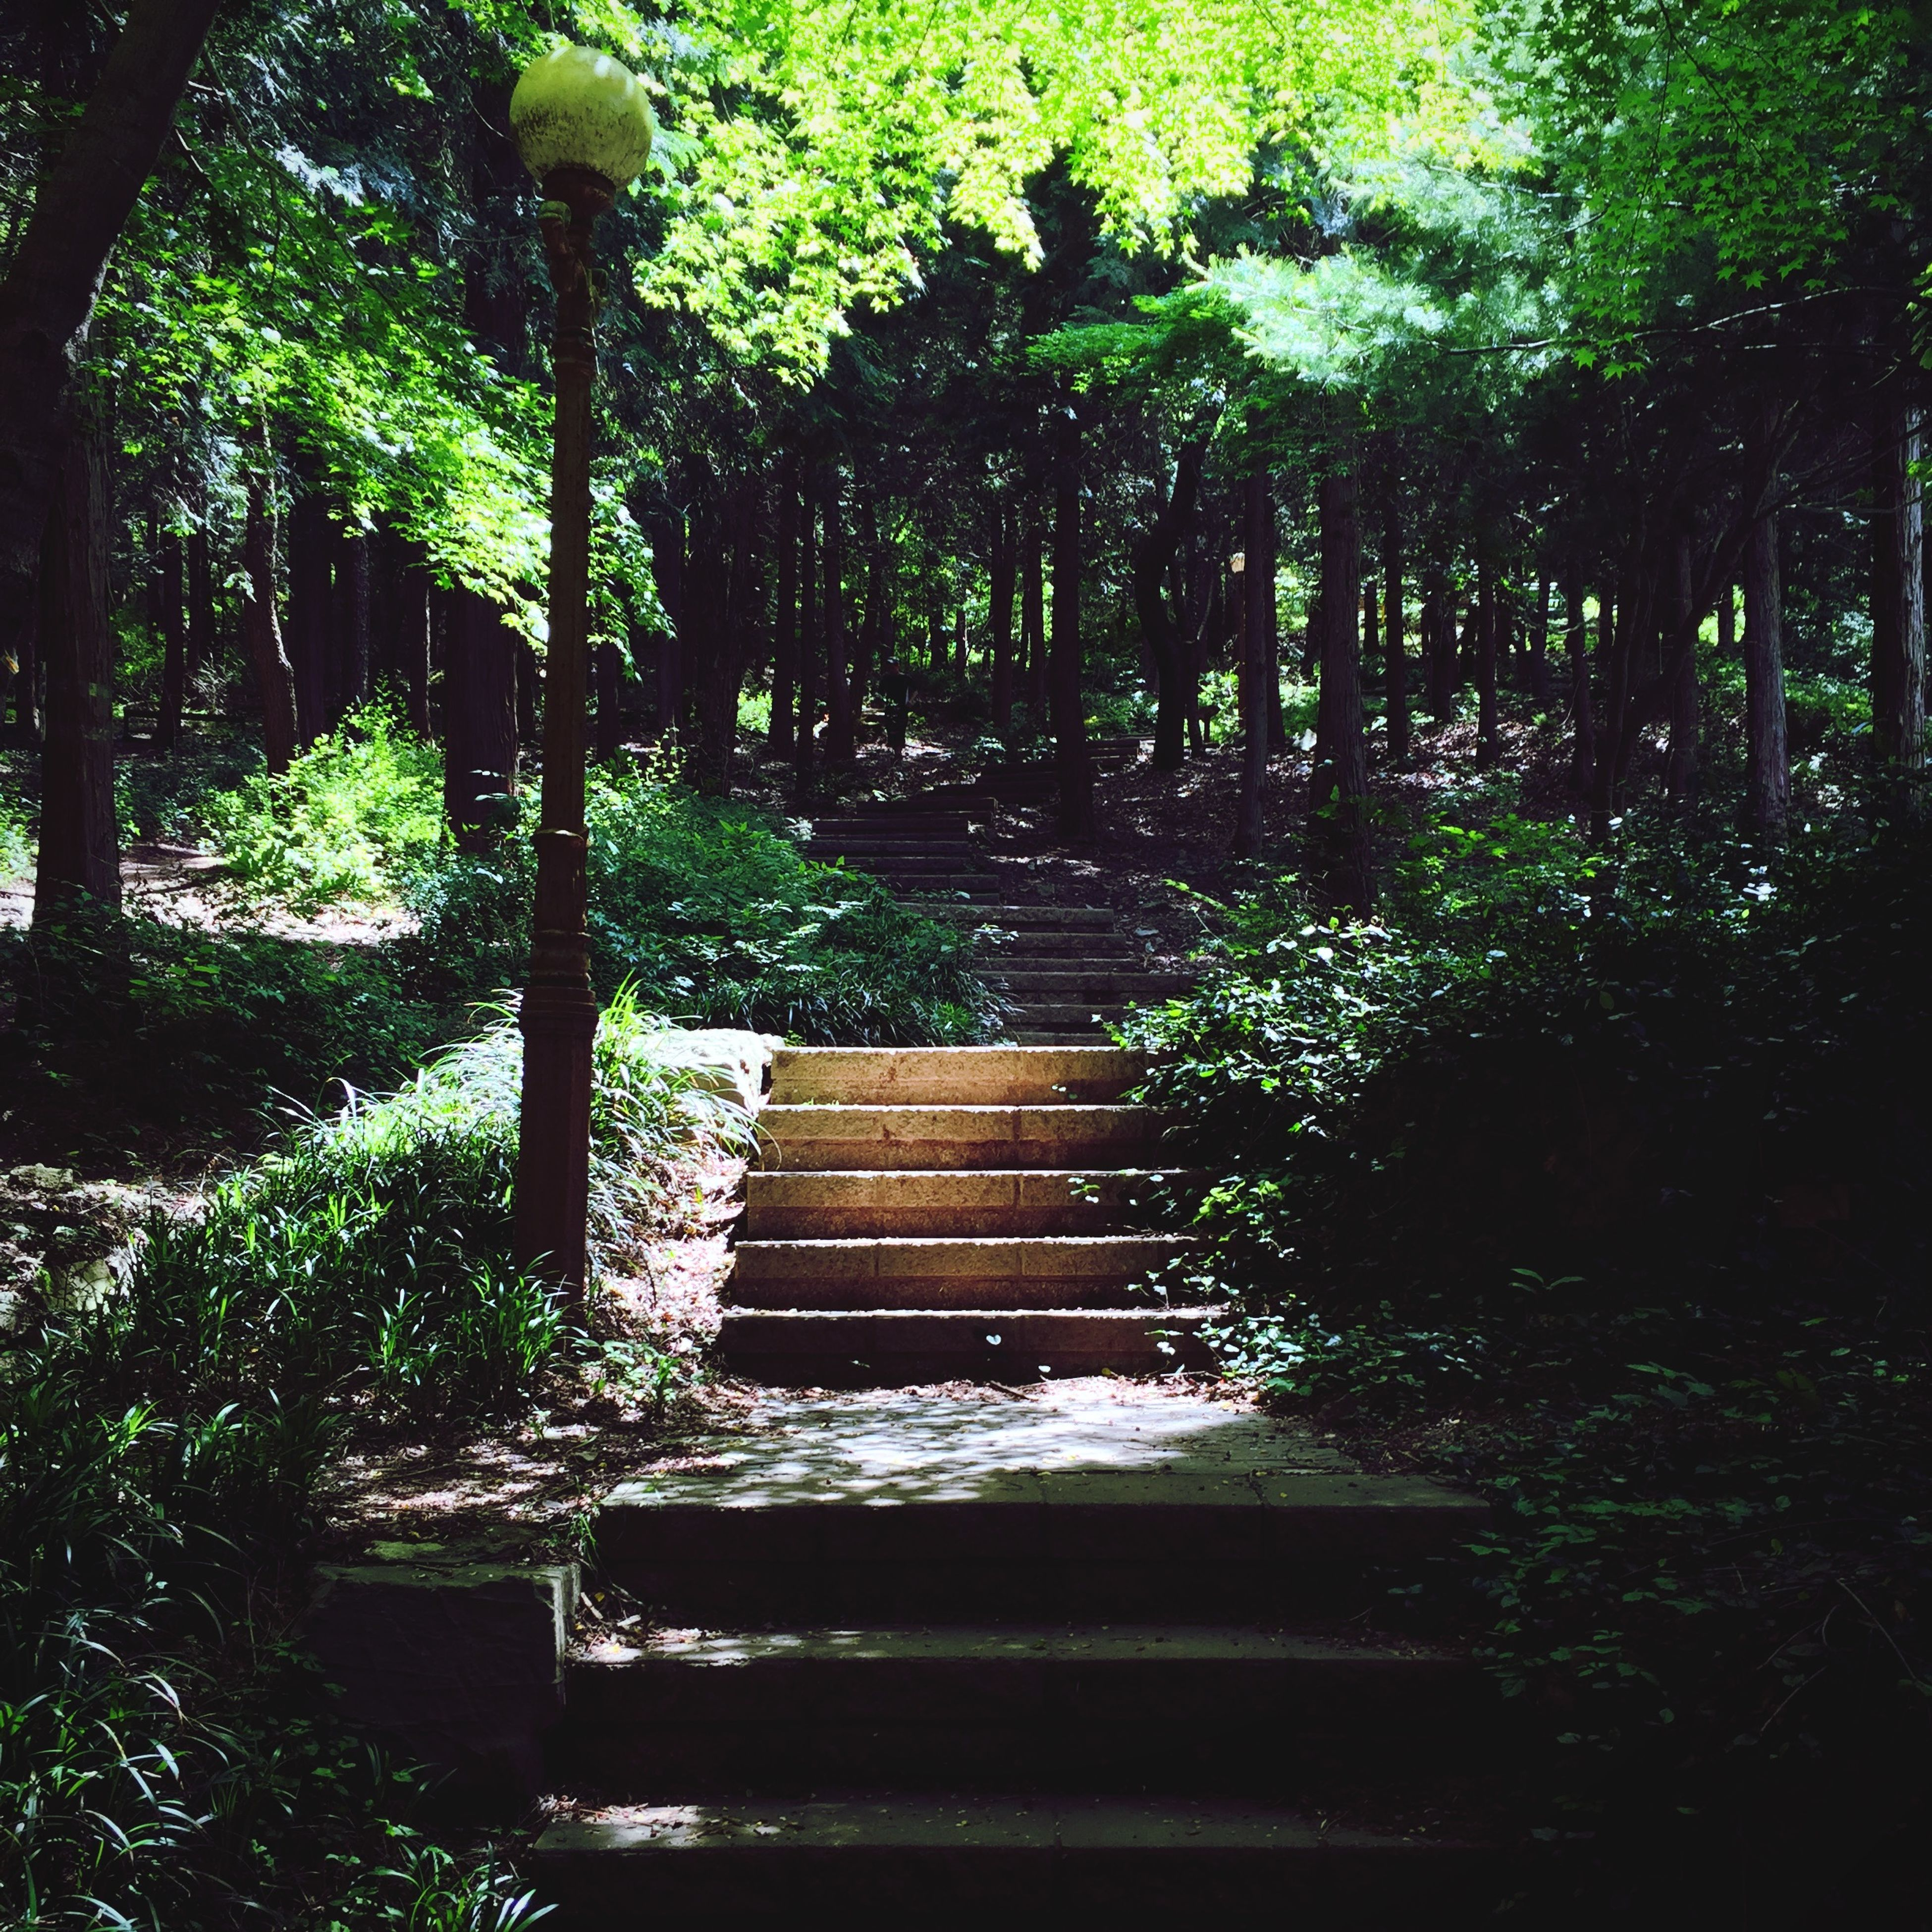 tree, growth, tranquility, bench, green color, park - man made space, plant, nature, forest, the way forward, tranquil scene, empty, steps, beauty in nature, park bench, lush foliage, absence, wood - material, sunlight, park